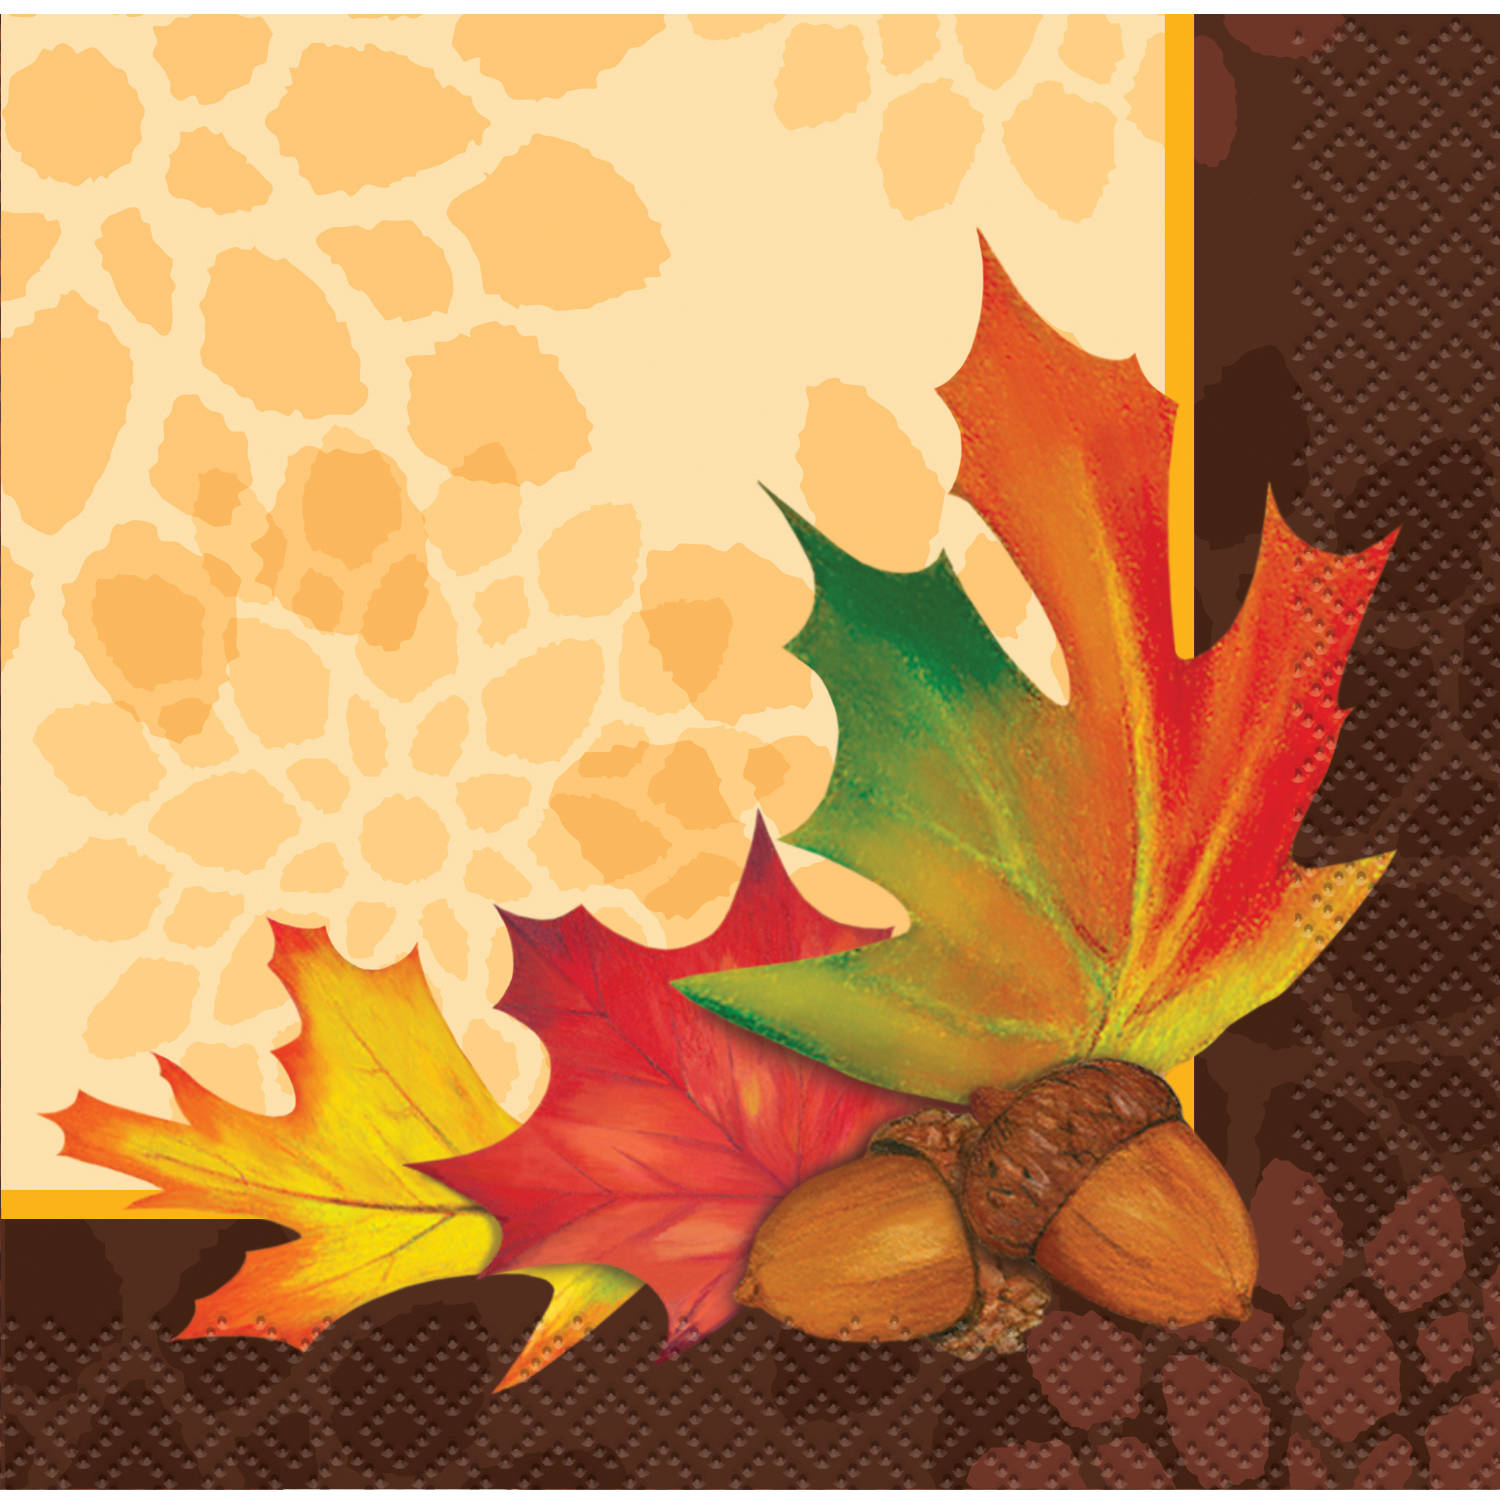 Fall Leaves Beverage Napkins, 16ct by Unique Industries